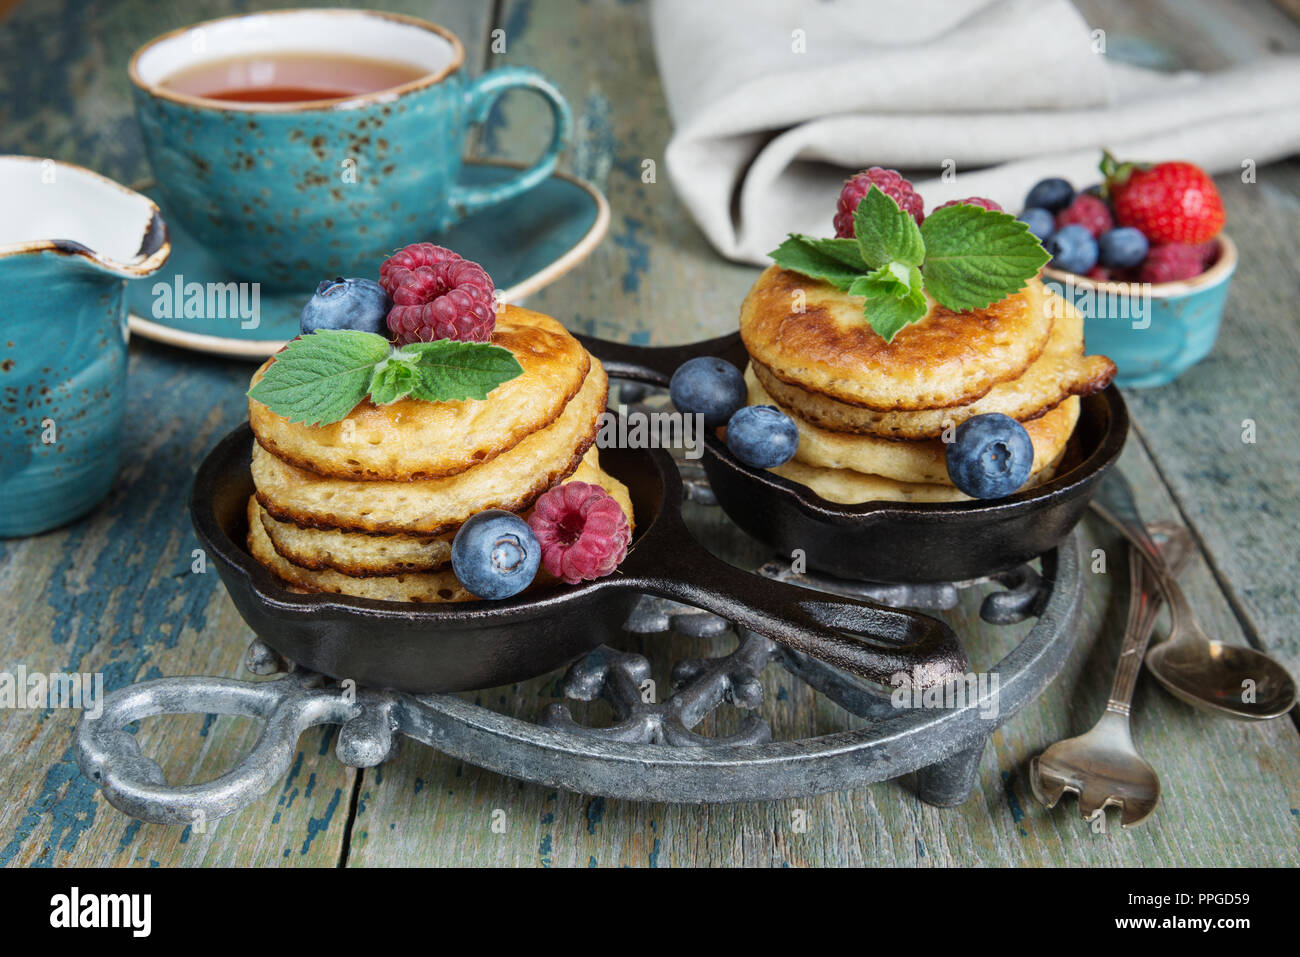 Breakfast of pancakes in cast-iron frying pans, fresh berries and black tea, in rustic style - Stock Image